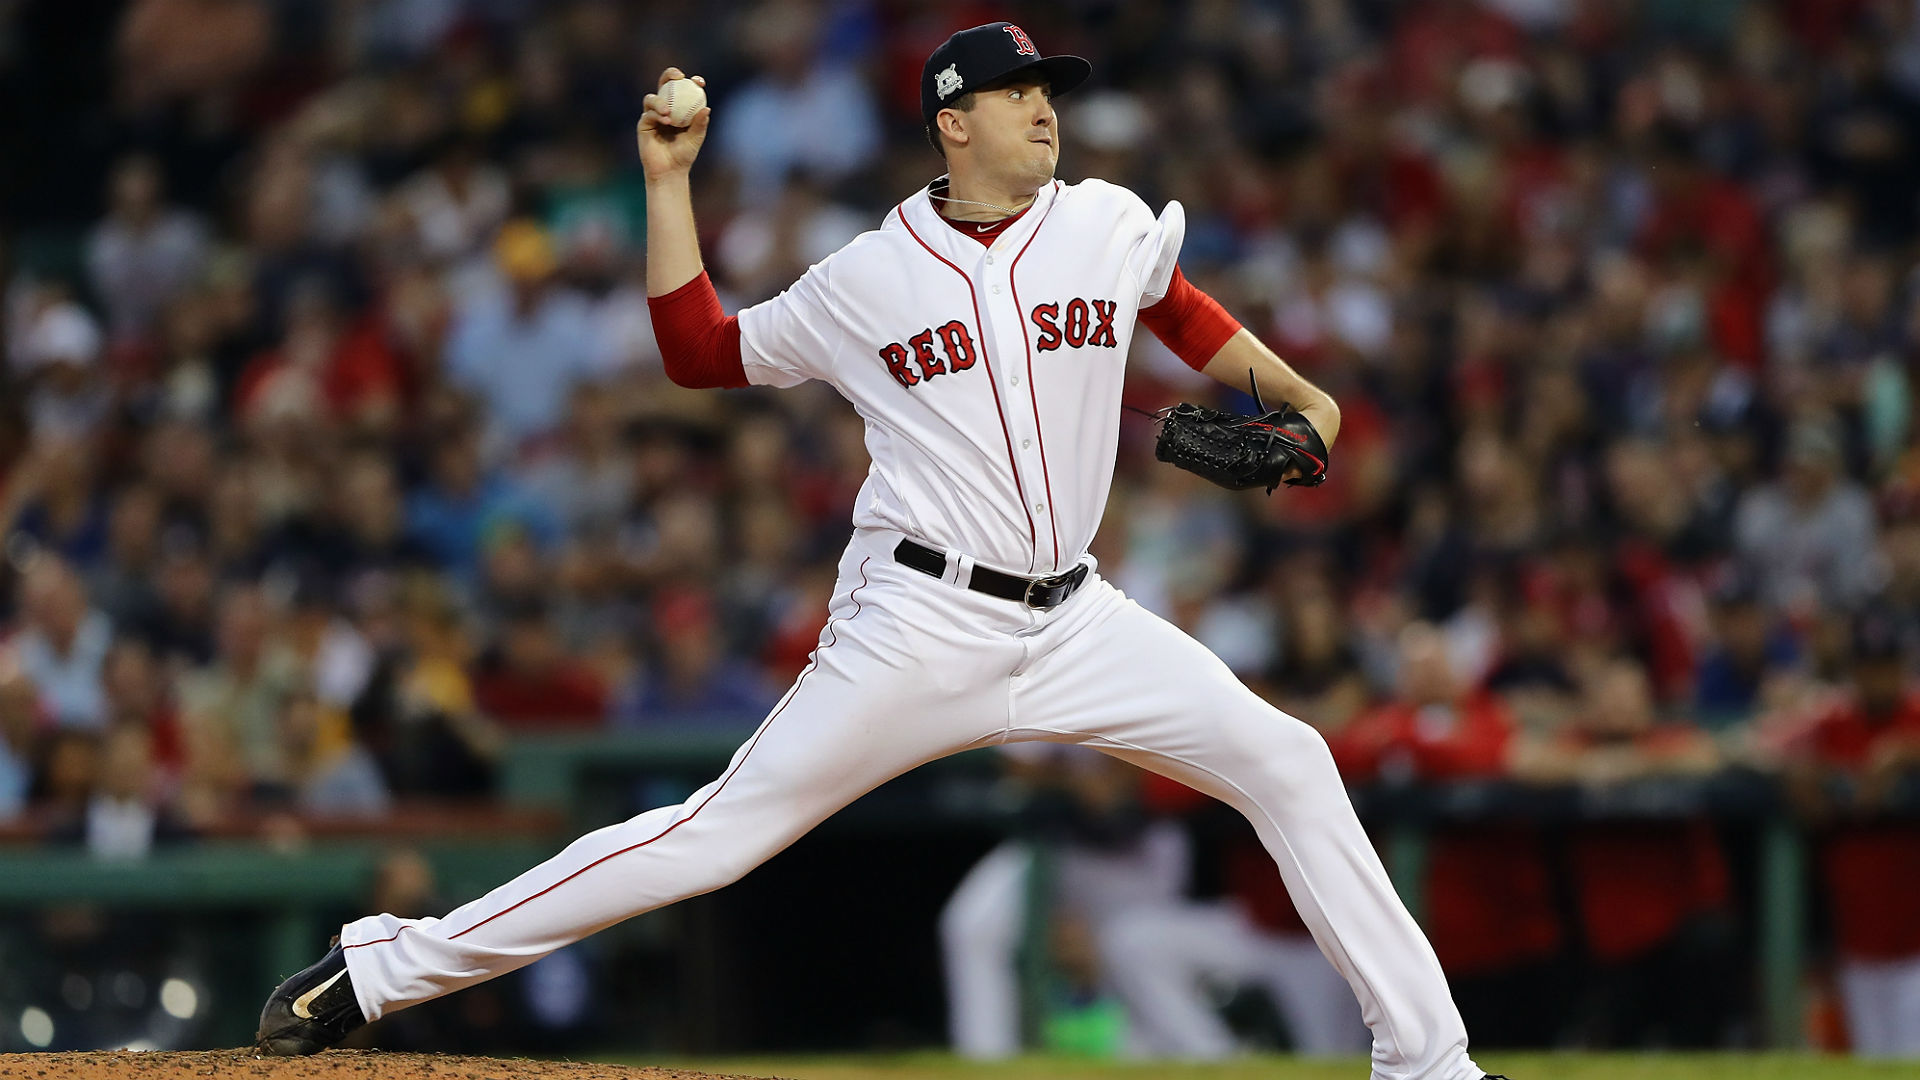 Red Sox reliever Smith injures shoulder throwing glove